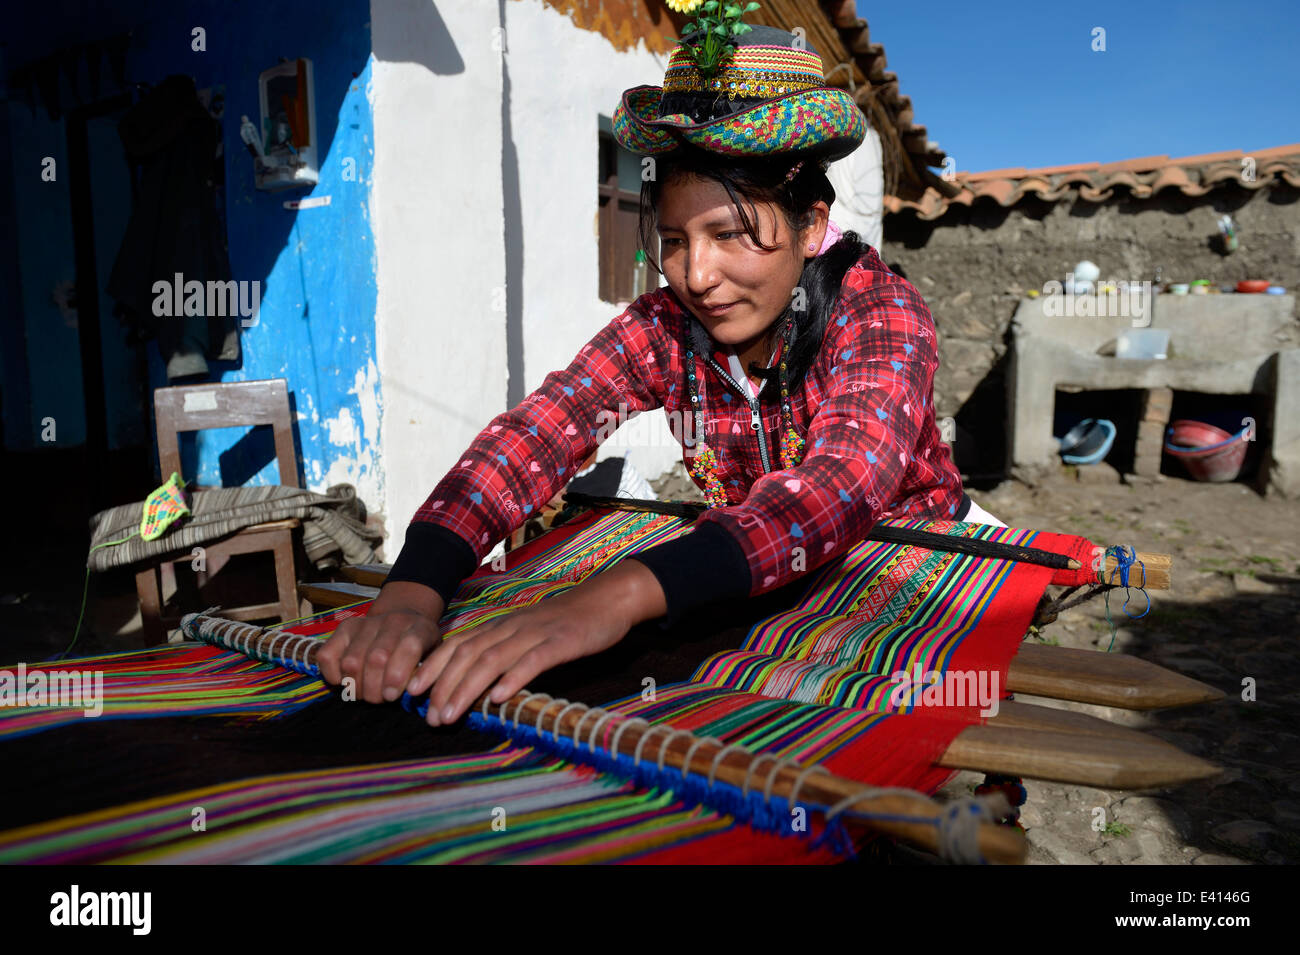 Peru, Quispillacts, Young woman weaving traditional cloth - Stock Image